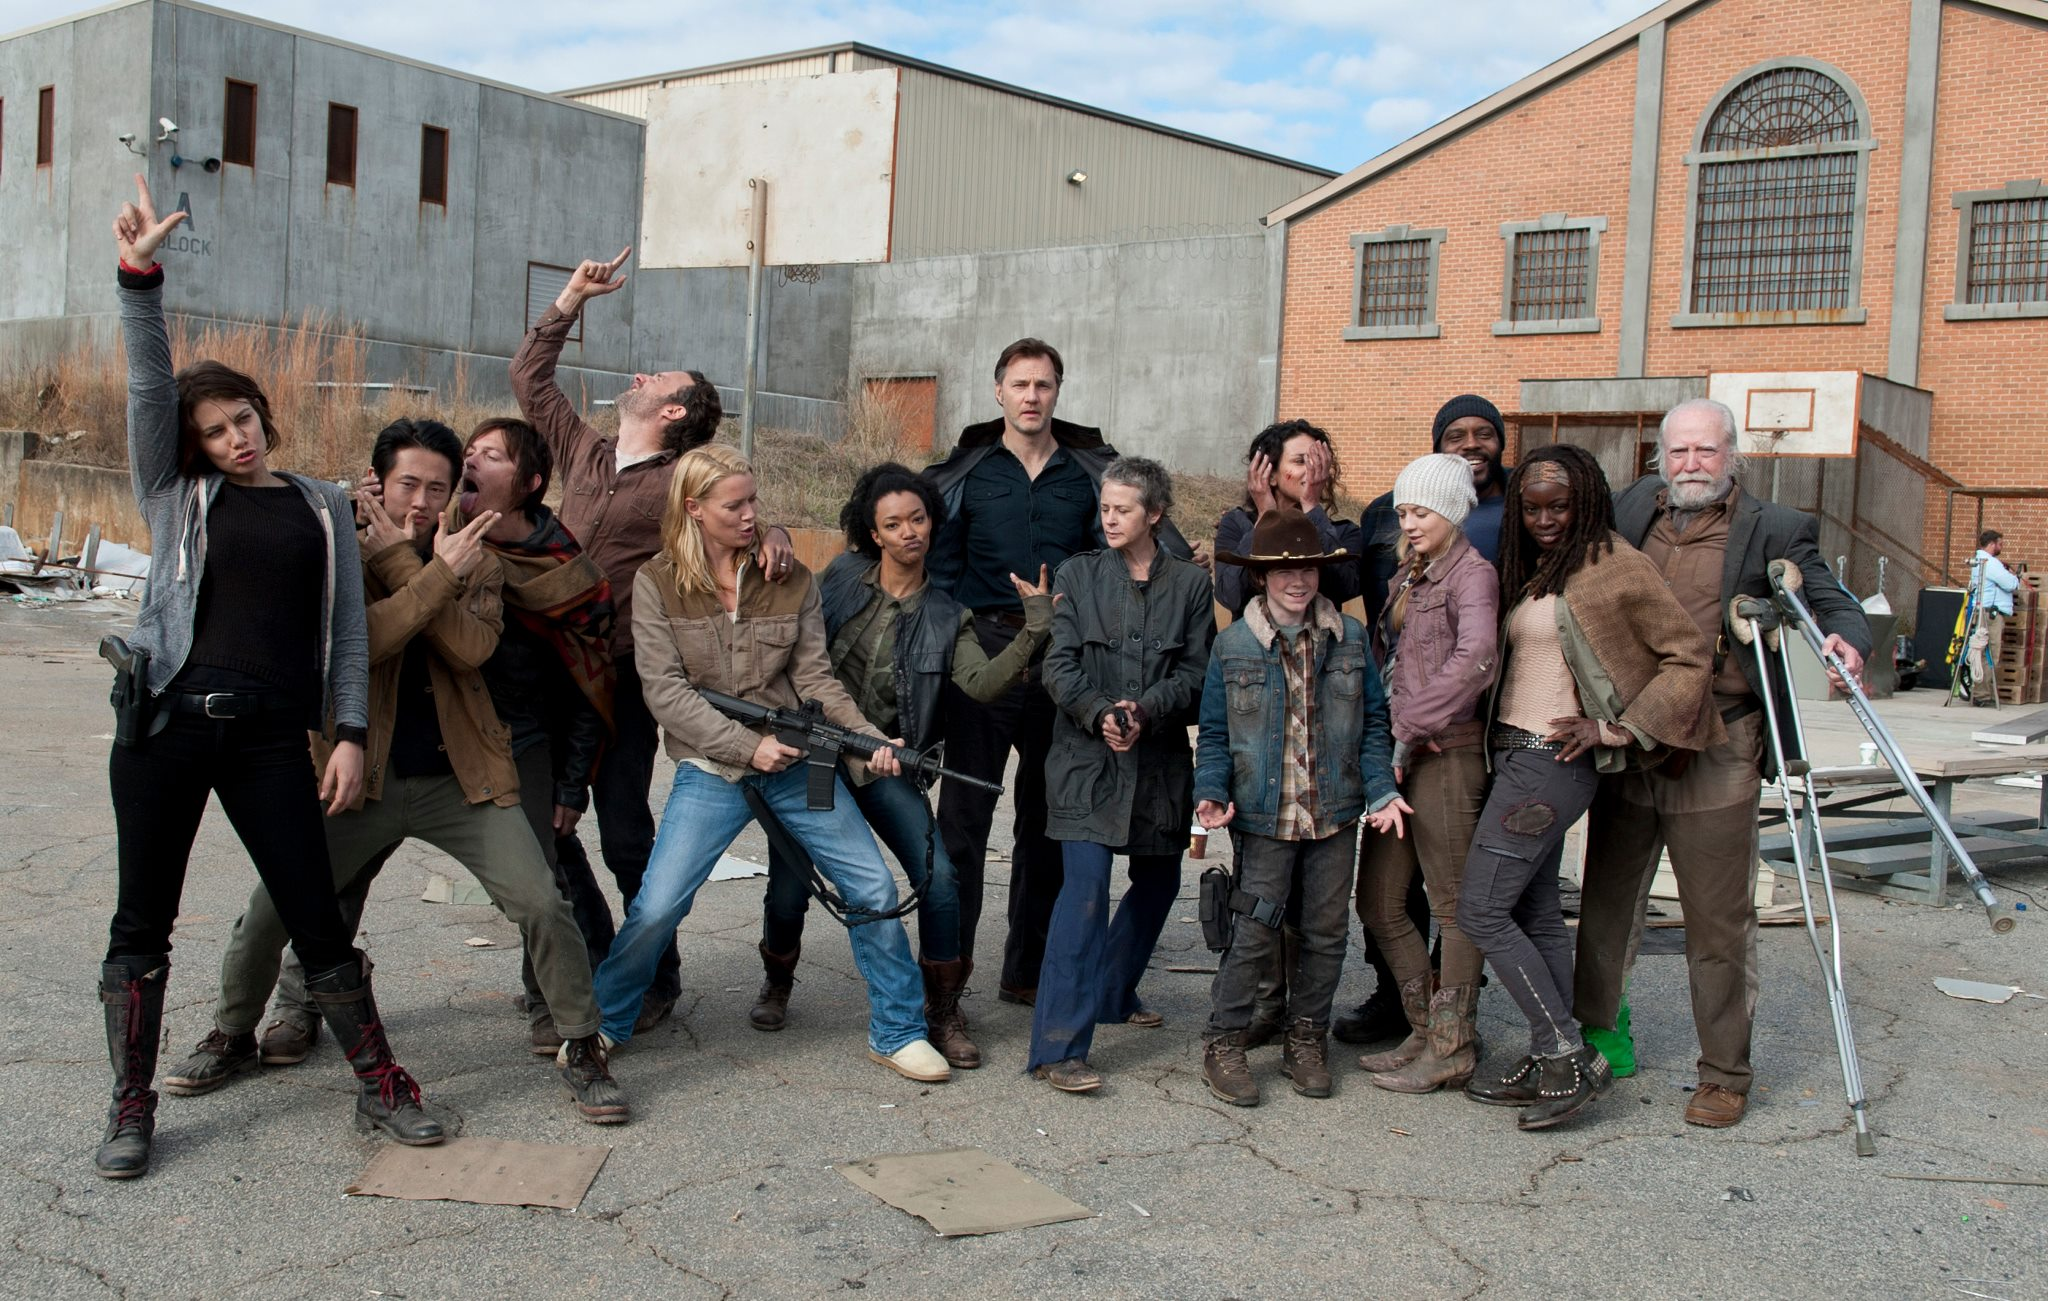 The Walking Dead\' at Comic Con 2013 – TheCollective